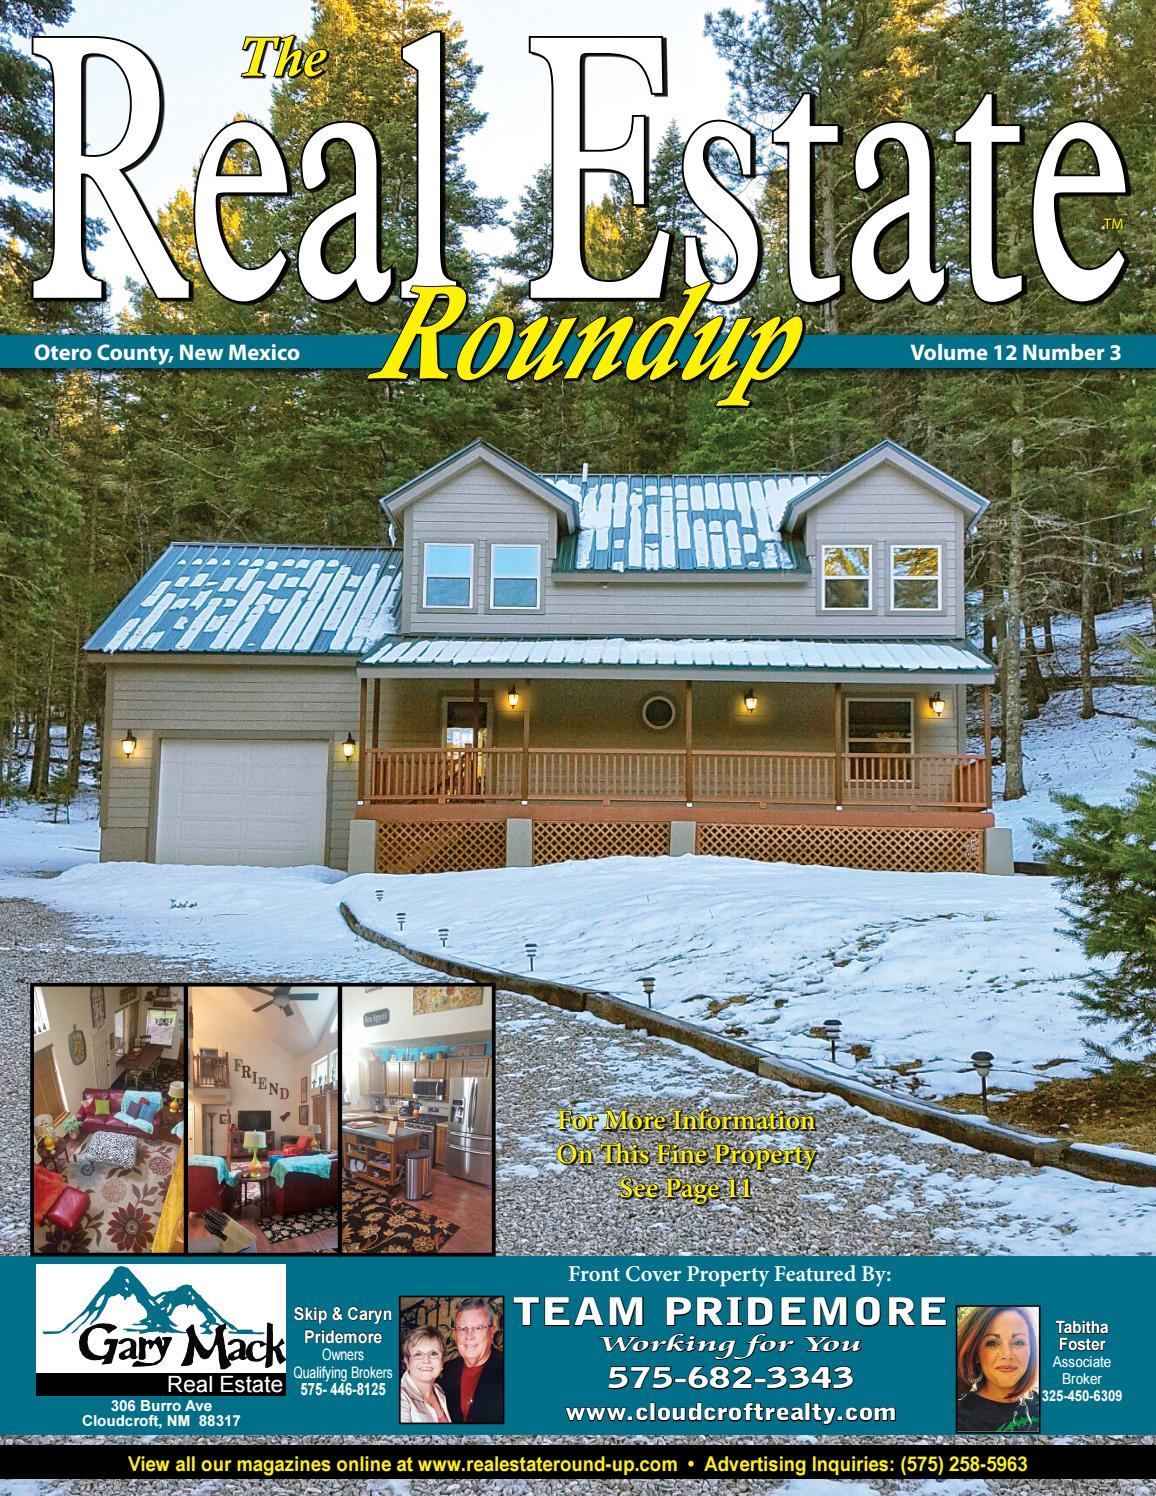 New mexico otero county cloudcroft - Alamogordo Real Estate Homes Land For Sale Cloudcroft Tularosa High Rolls Vol 12 No 3 By Helpful Publications Issuu